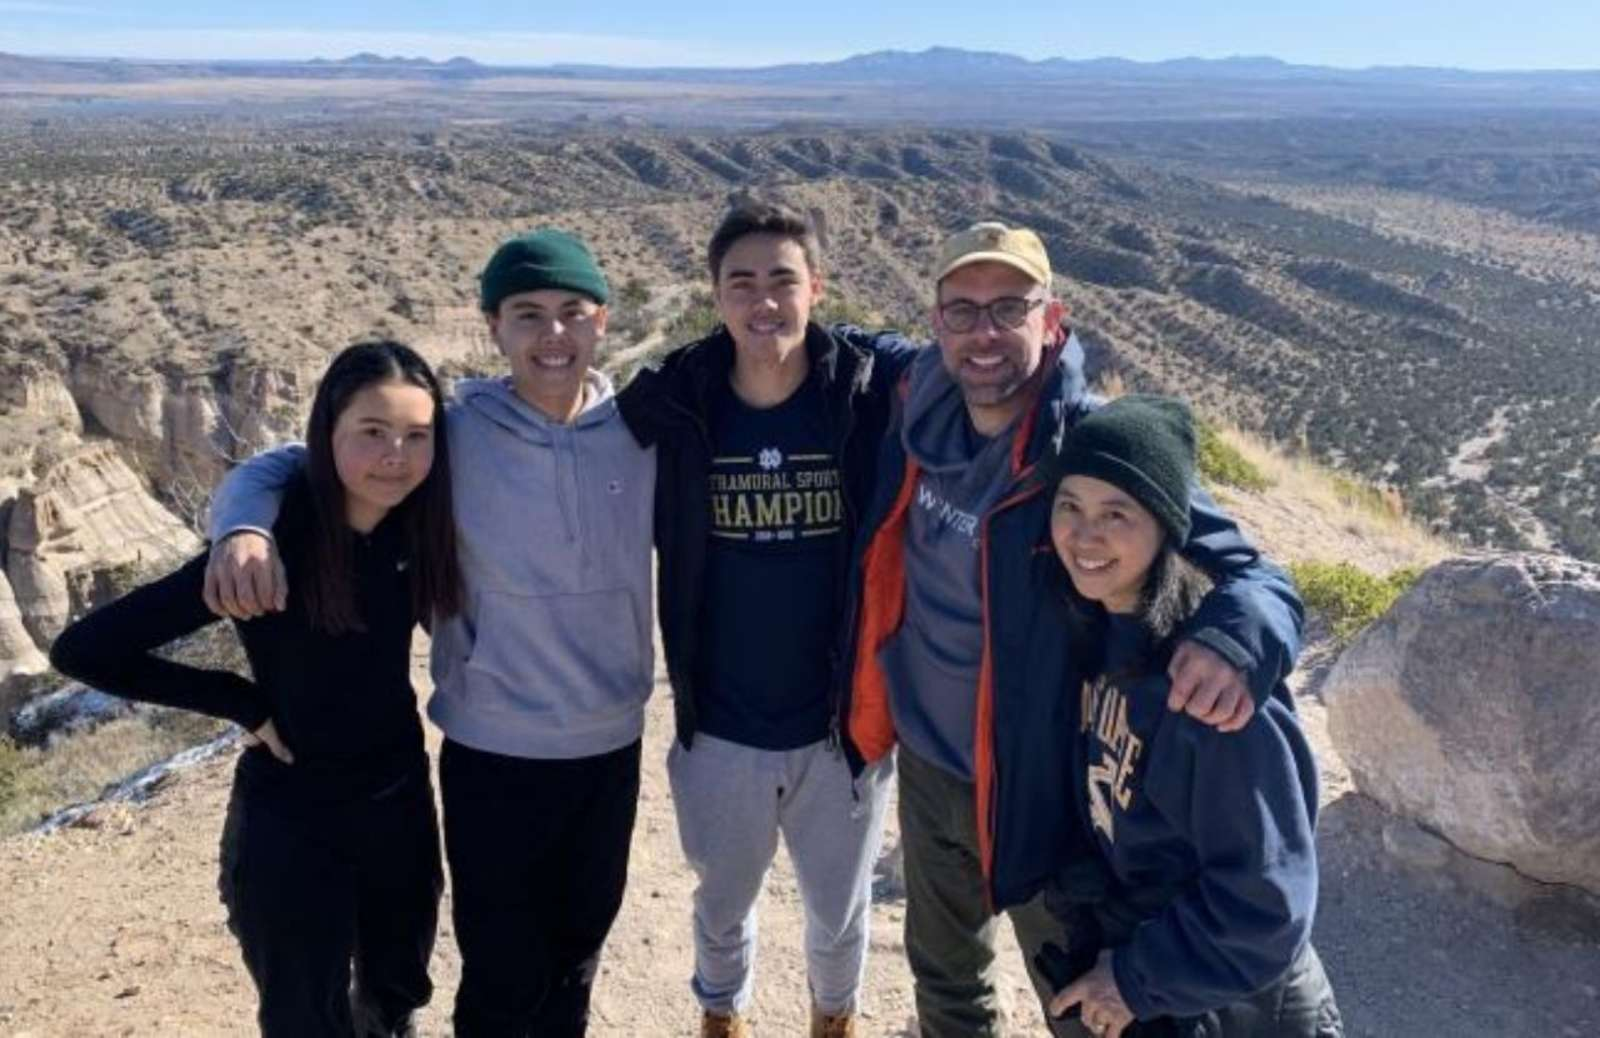 iRelaunch team member Mari Bailey standing with her husband, daugher, and two sons at the Grand Canyon